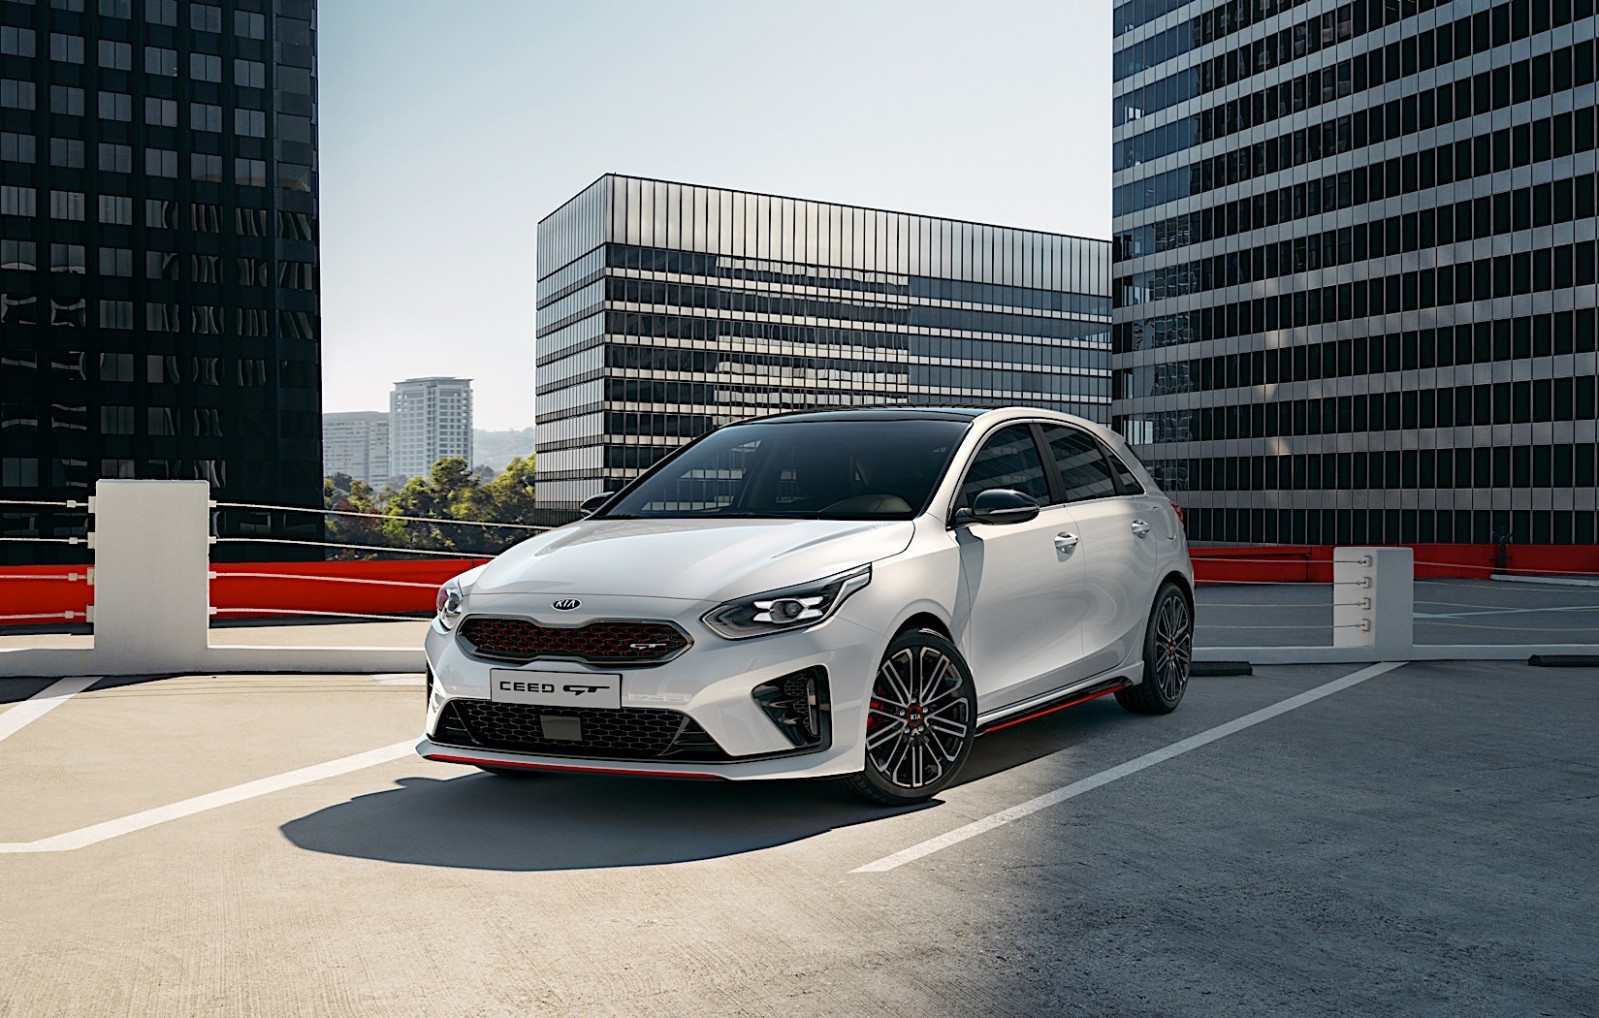 New Kia Forte1111 Might Have Hot Version with 11.11 Turbo Engine ..